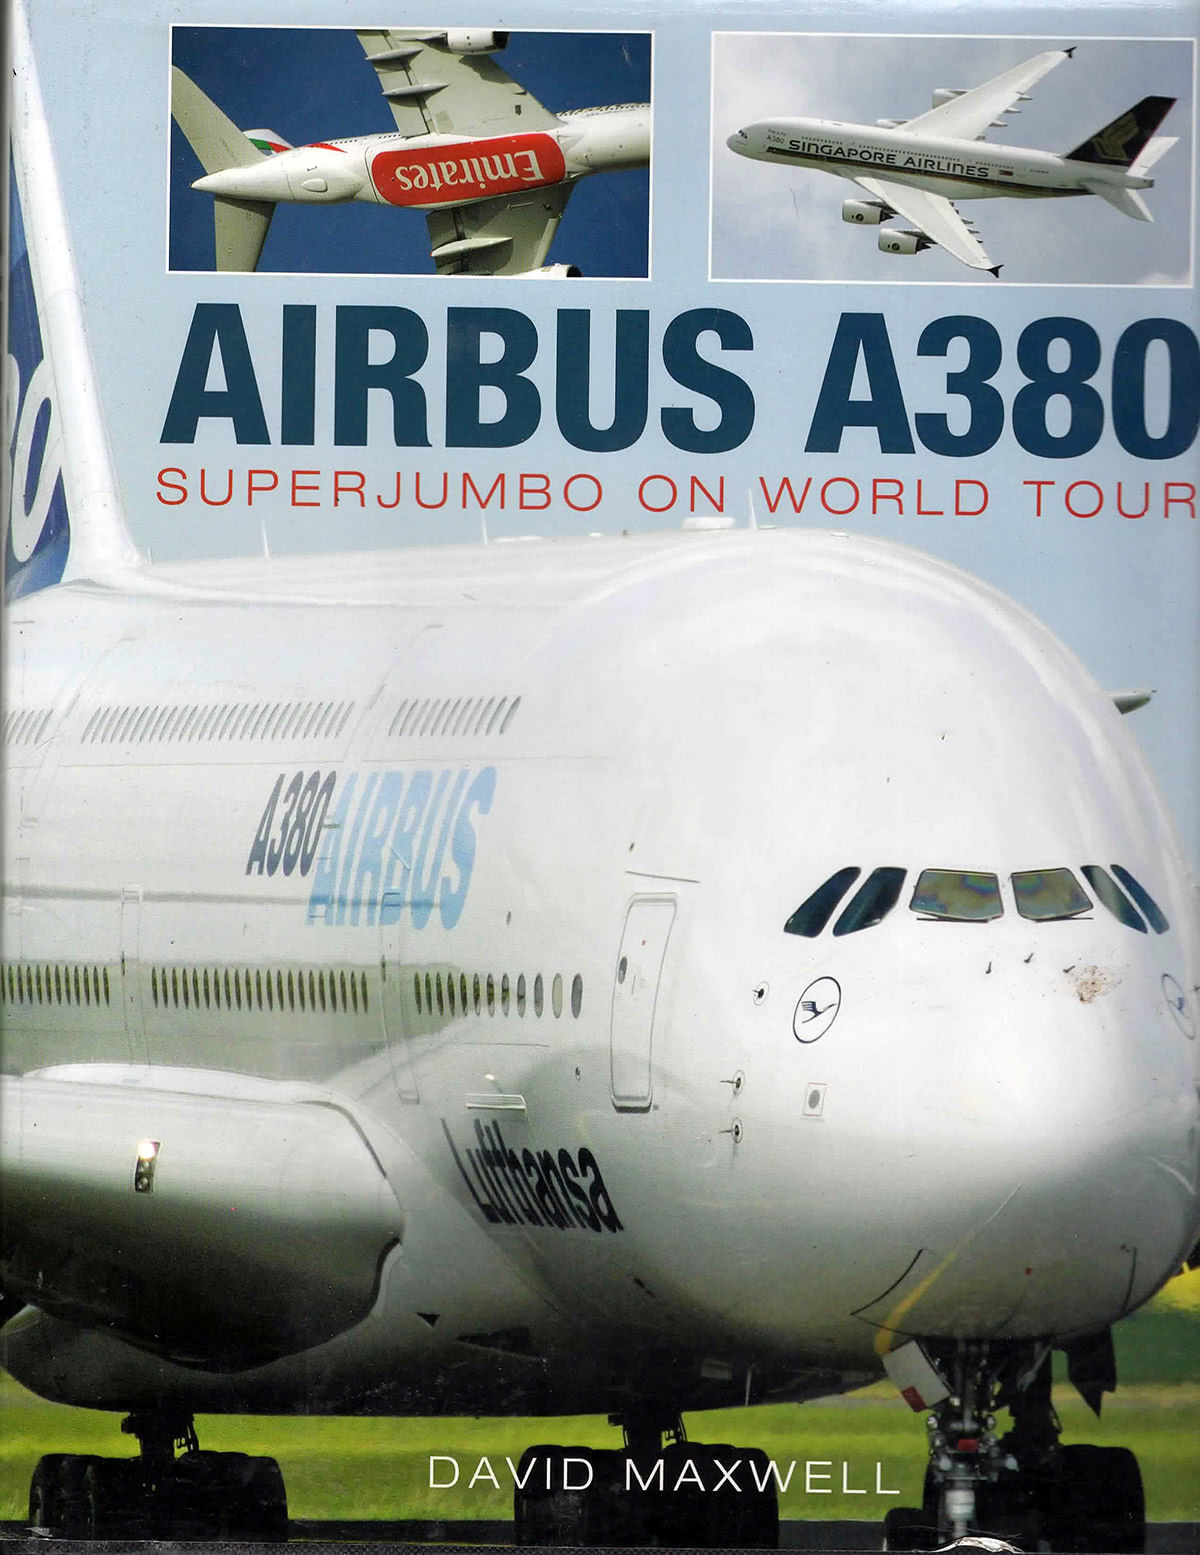 Airbus A380 Superjumbo on World Tour